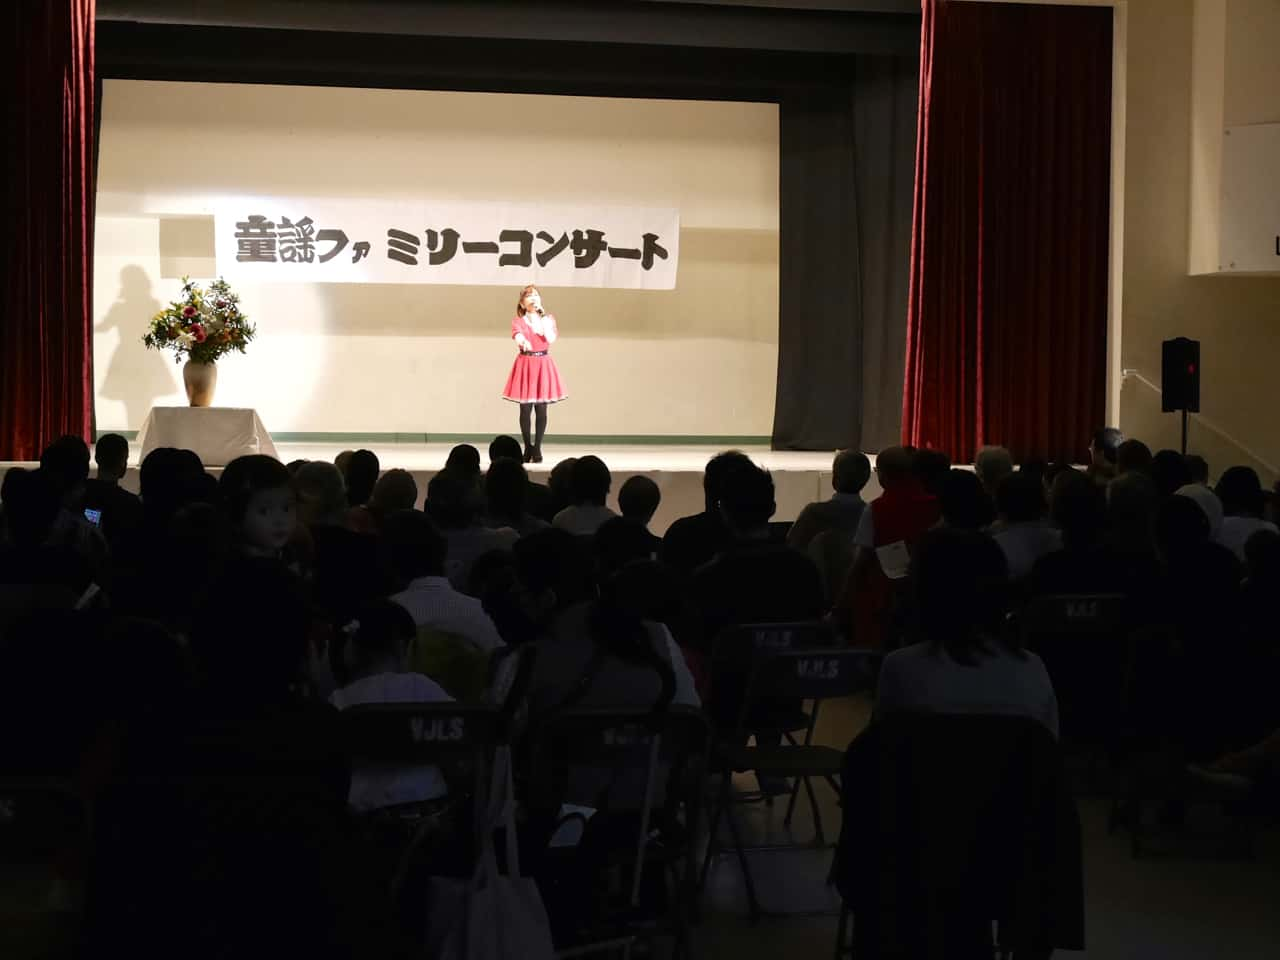 A lot of people attended the concert. 大盛況だったコンサート